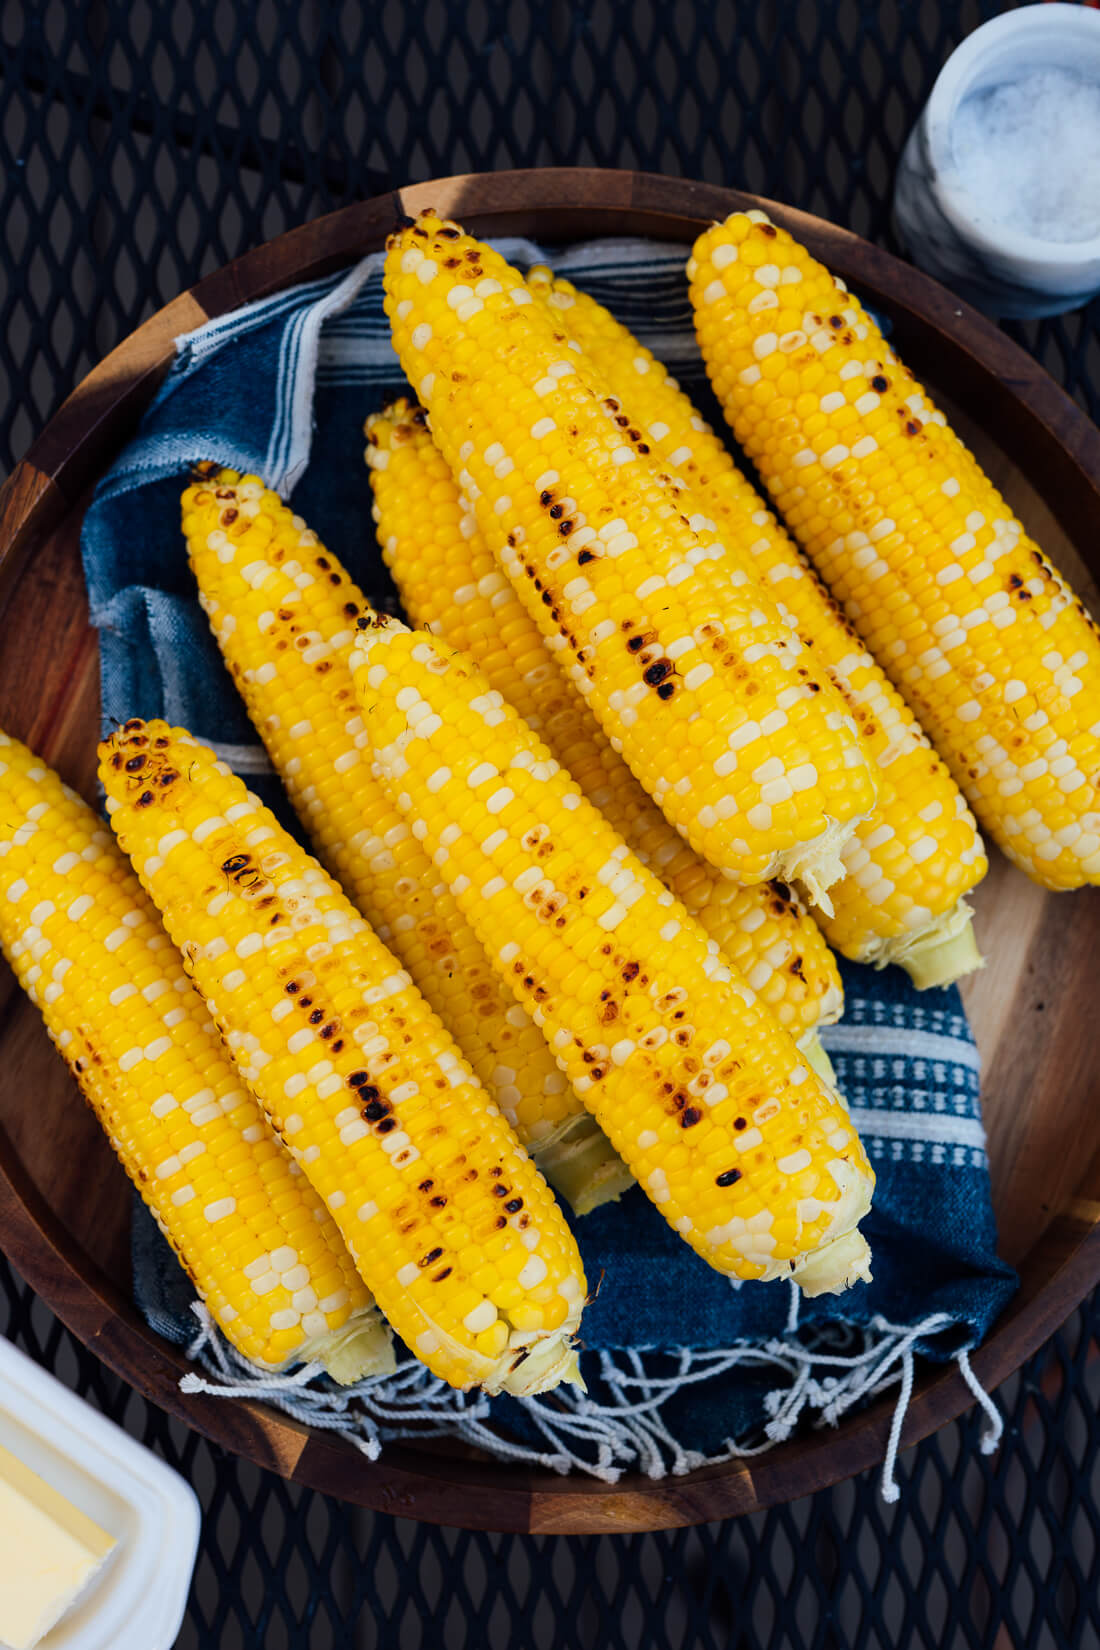 grilled corn on the cob with butter and salt on the side